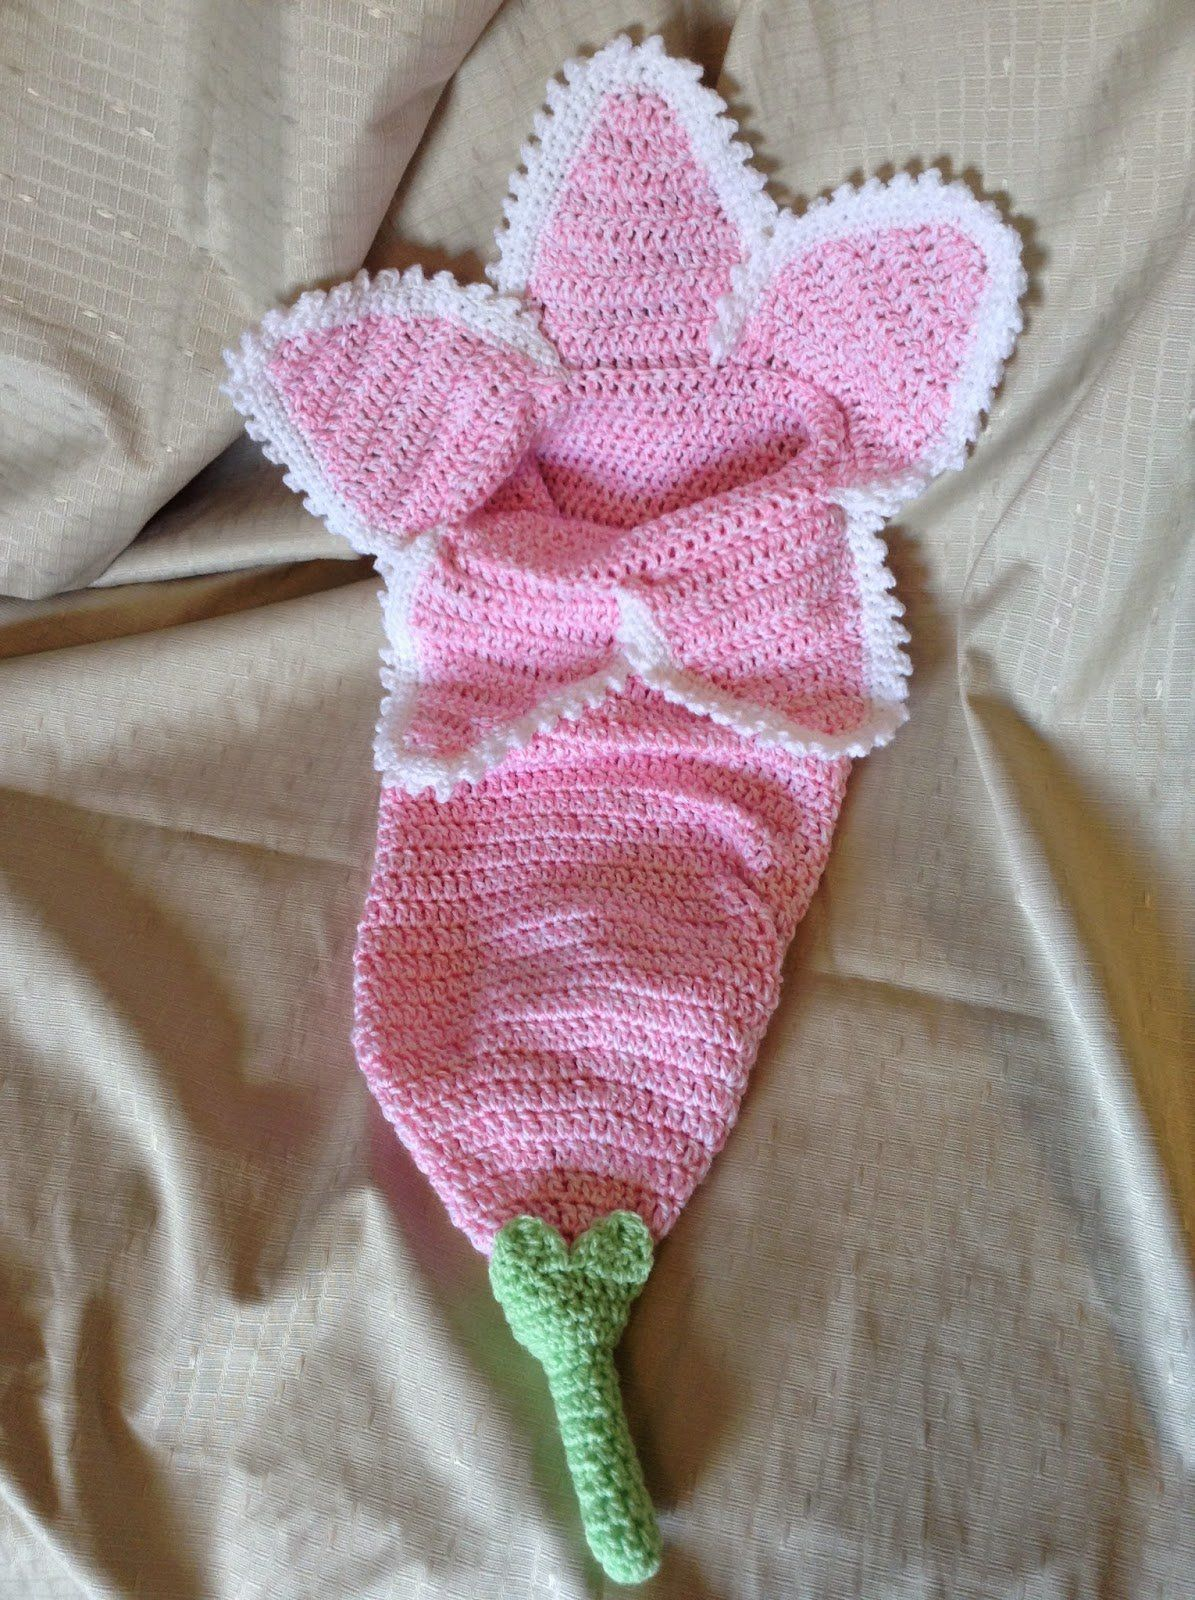 Crocheted Flower Baby Cocoons Are Adorable | Baby cocoon, Crochet ...